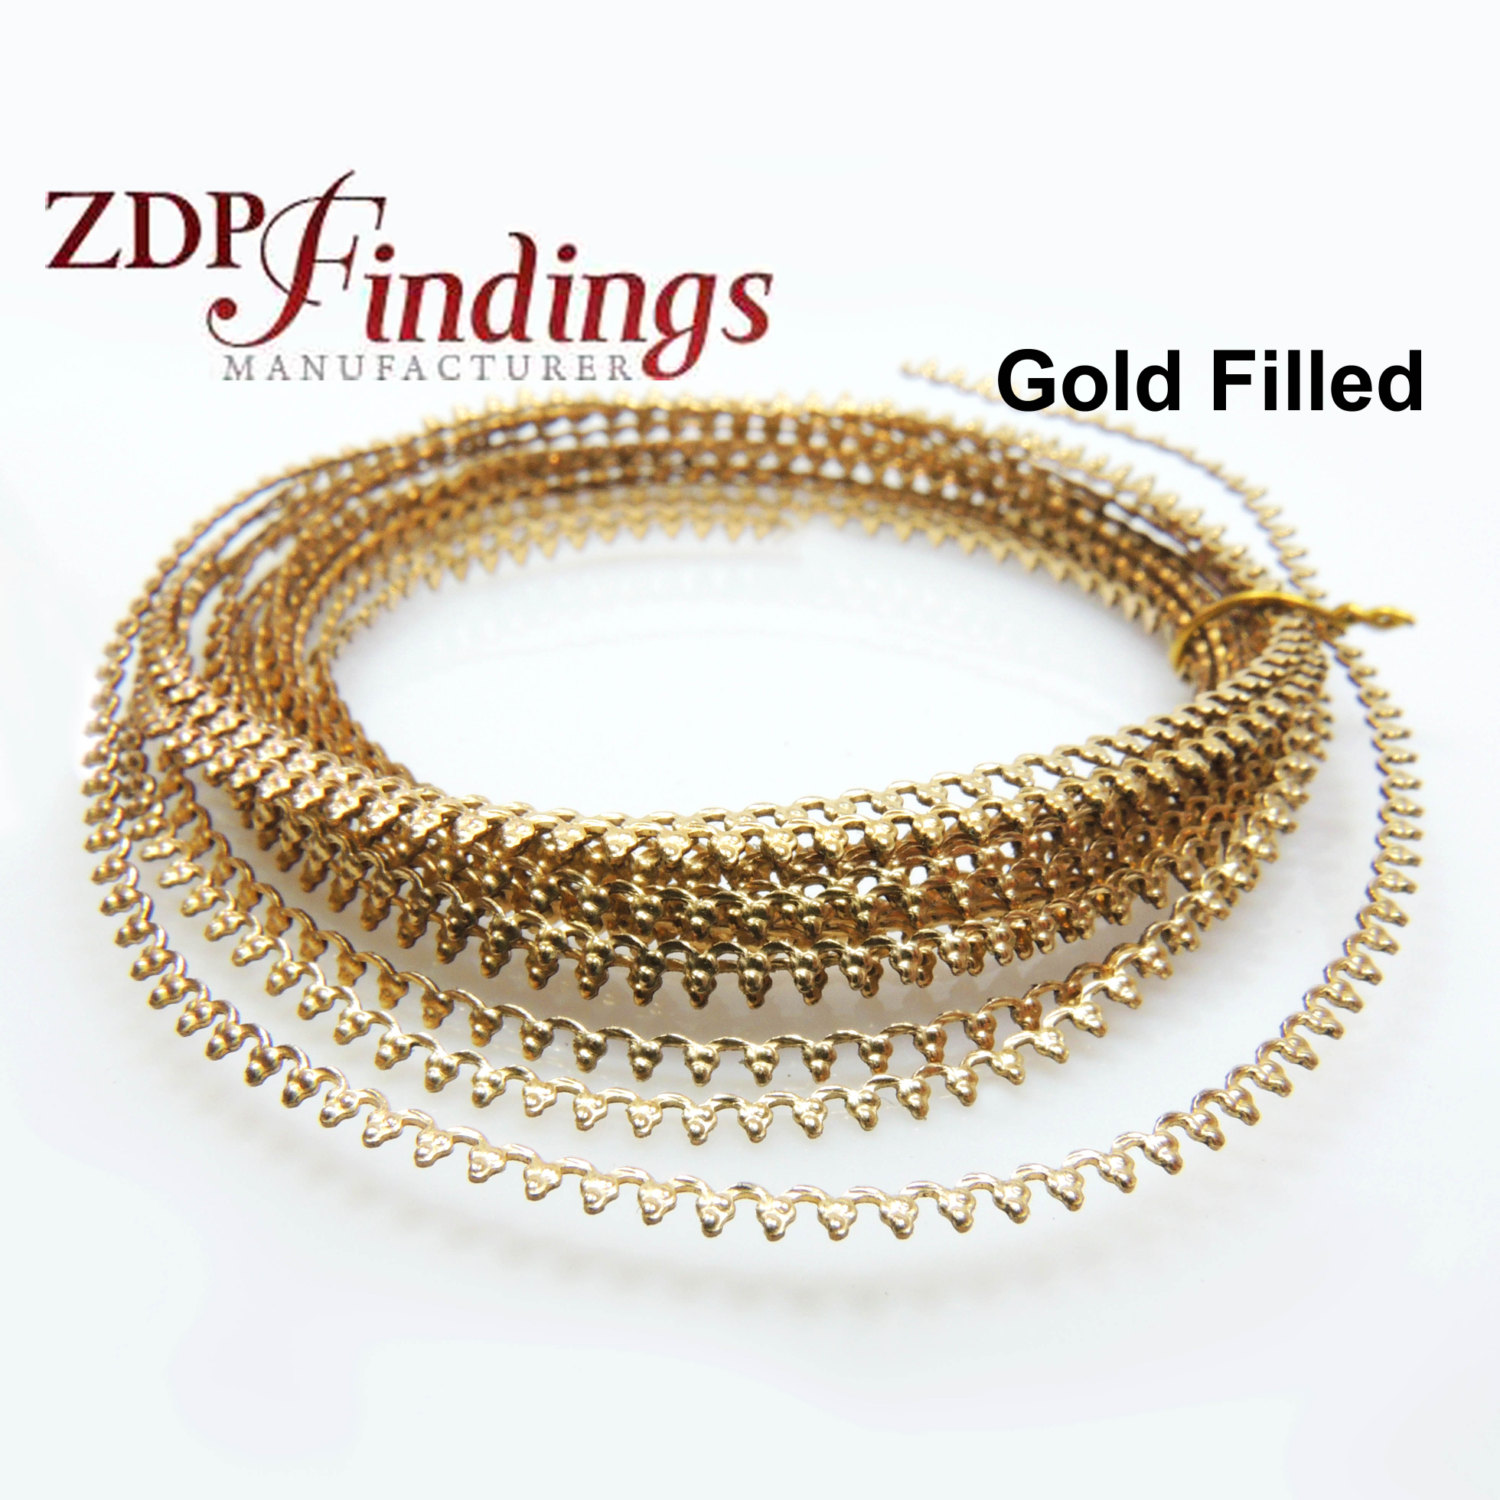 Gold Filled - Gallery Wire - Shop By Category